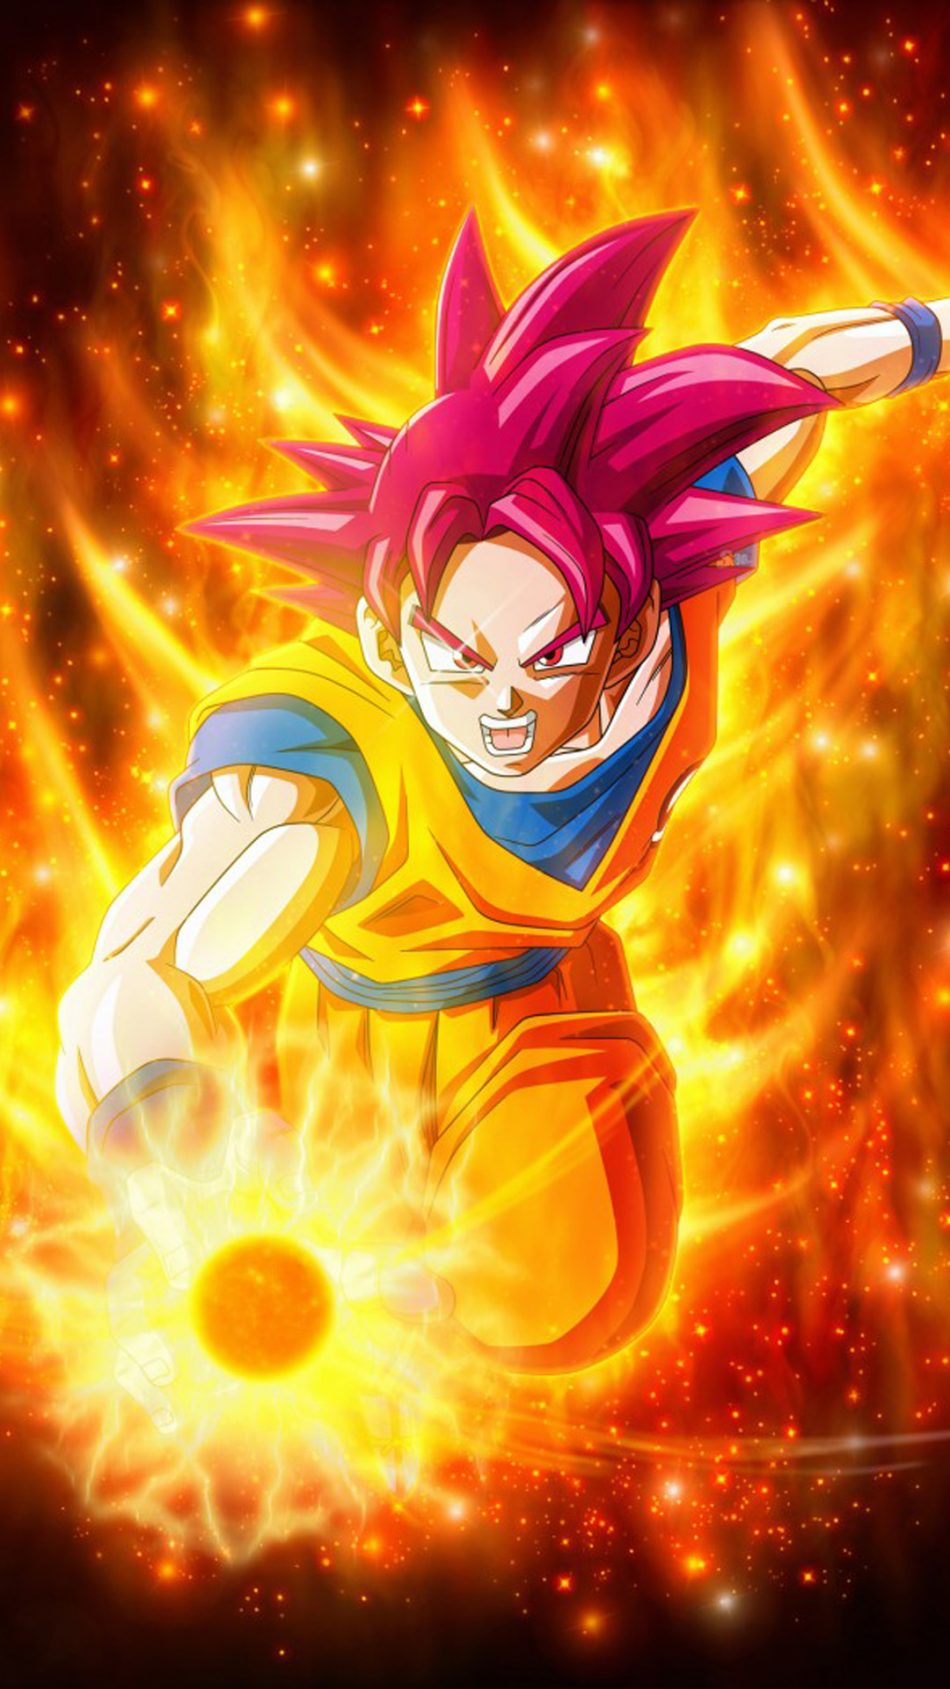 Super Saiyan God In Dragon Ball Super HD Mobile Wallpaper